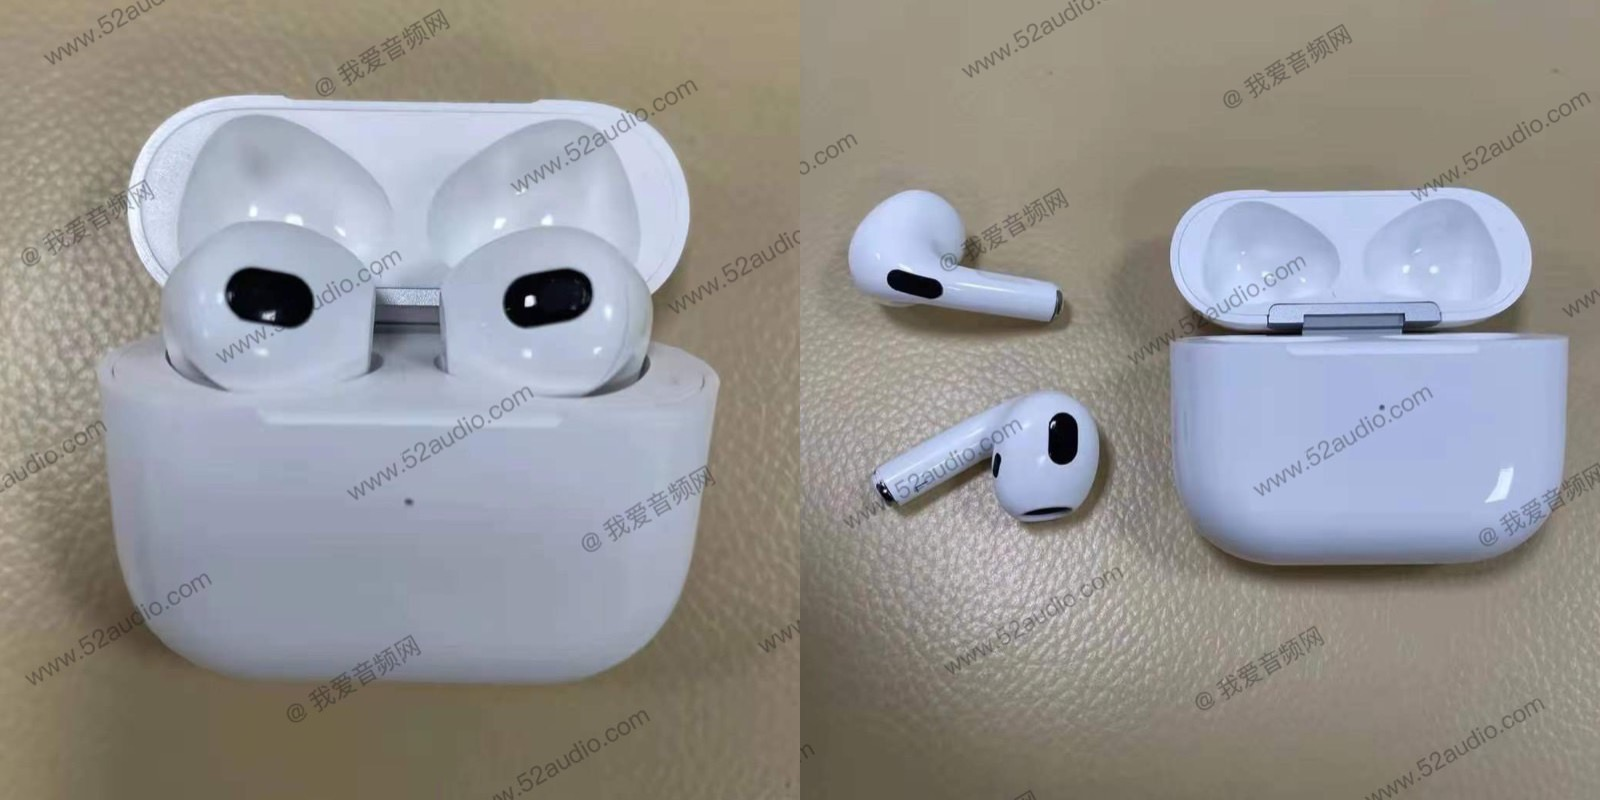 AirPods 3 photos leak again